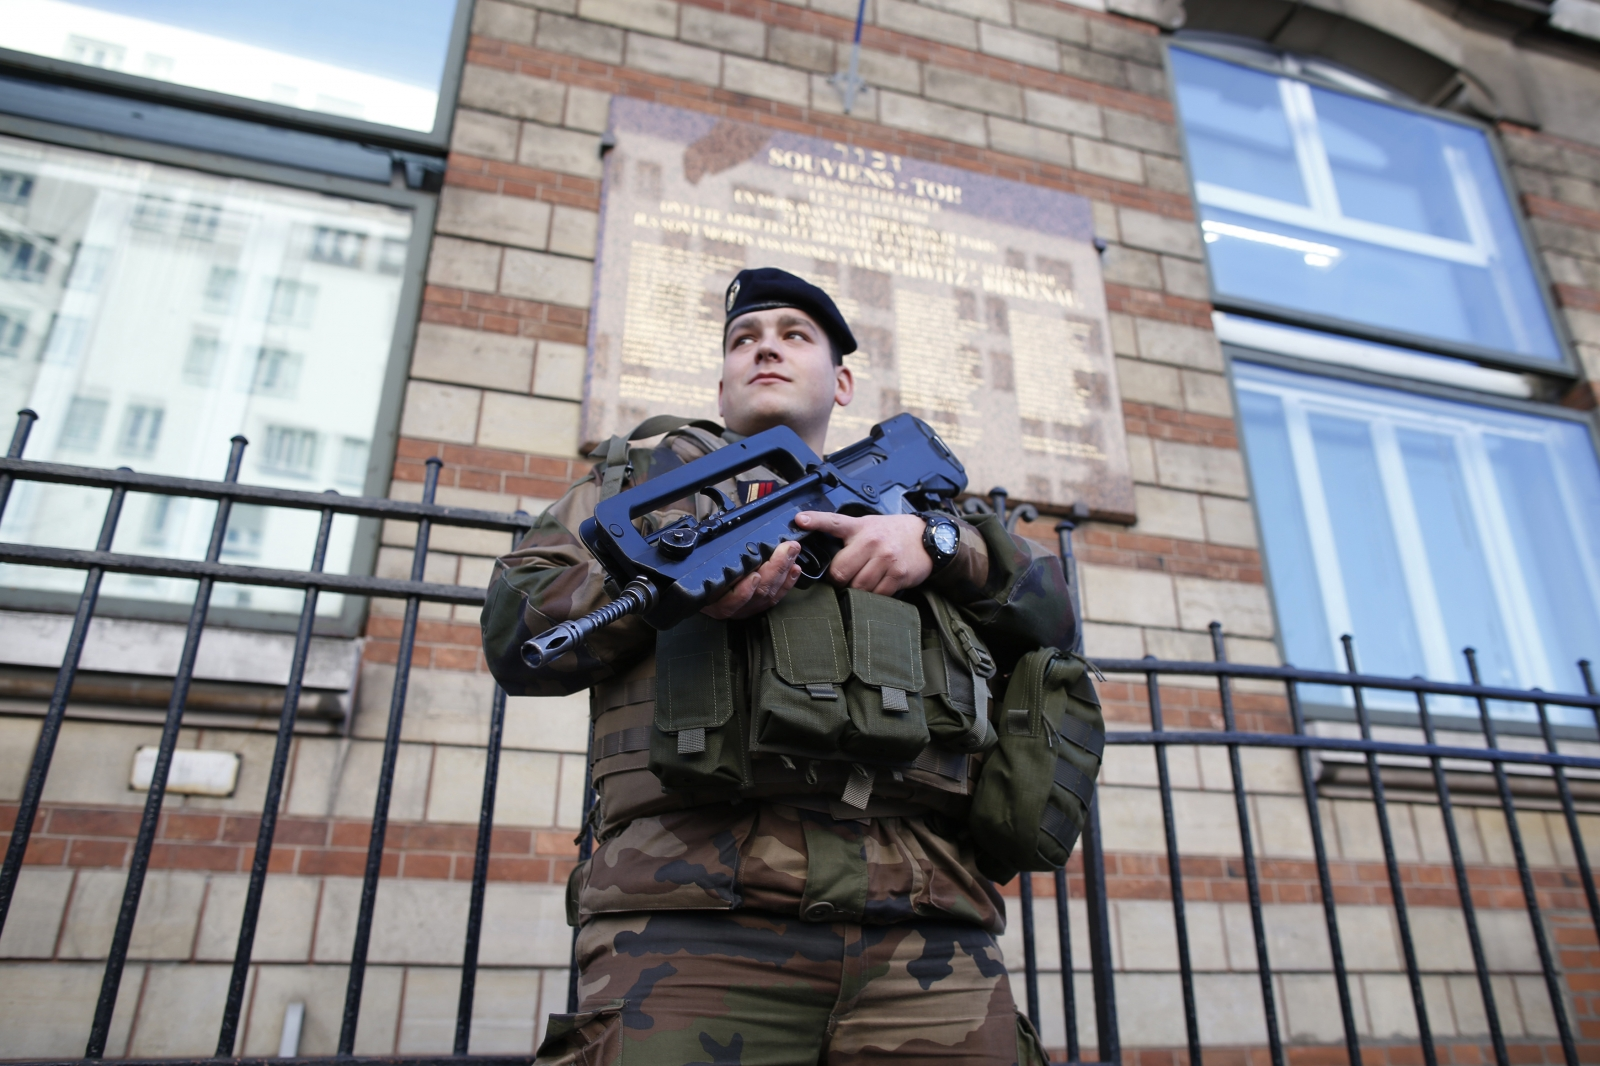 Charlie Hebdo France police step up security